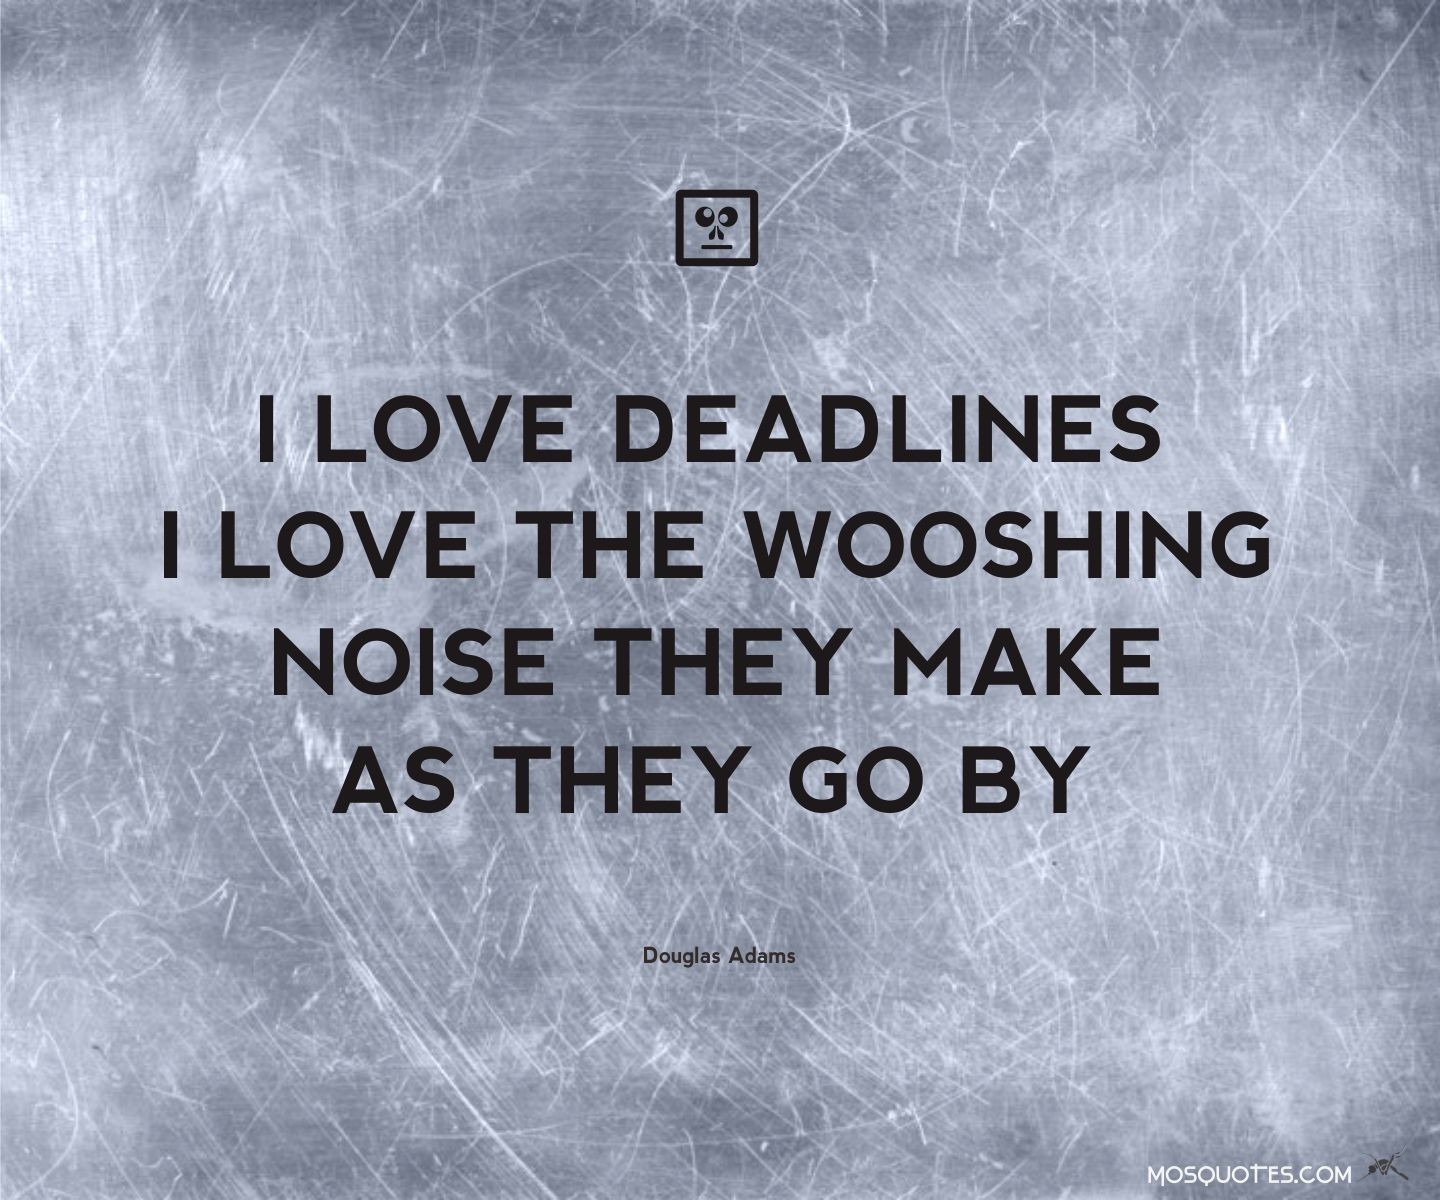 Construction Quotes Humor Quotes I Love Deadlines I Love The Whooshing Noise They Make